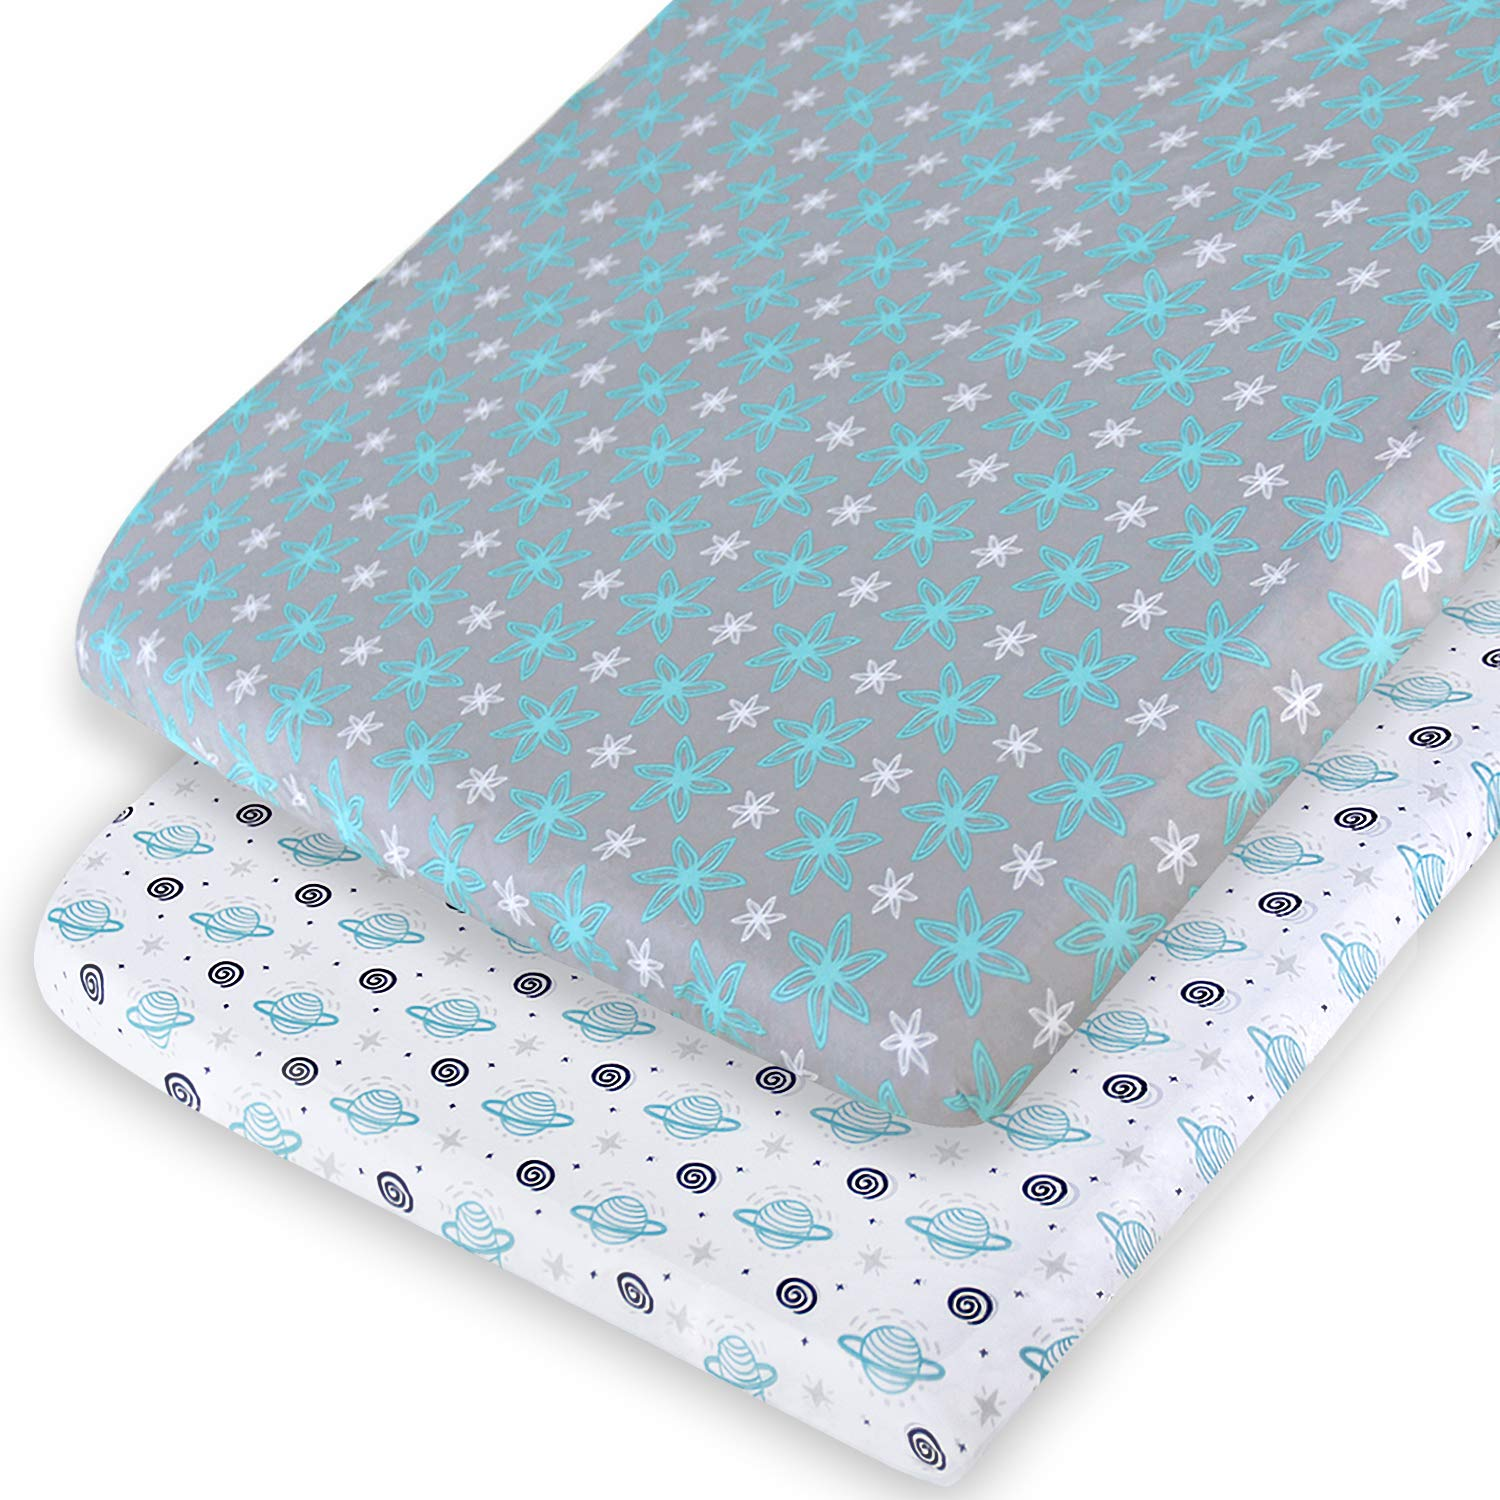 Pack and Play Sheets, 2 Pack Pack n Play Sheets Compatible with Graco Pack n Play/Mini Crib,100% Soft and Breathable Microfiber, Planet & Flower